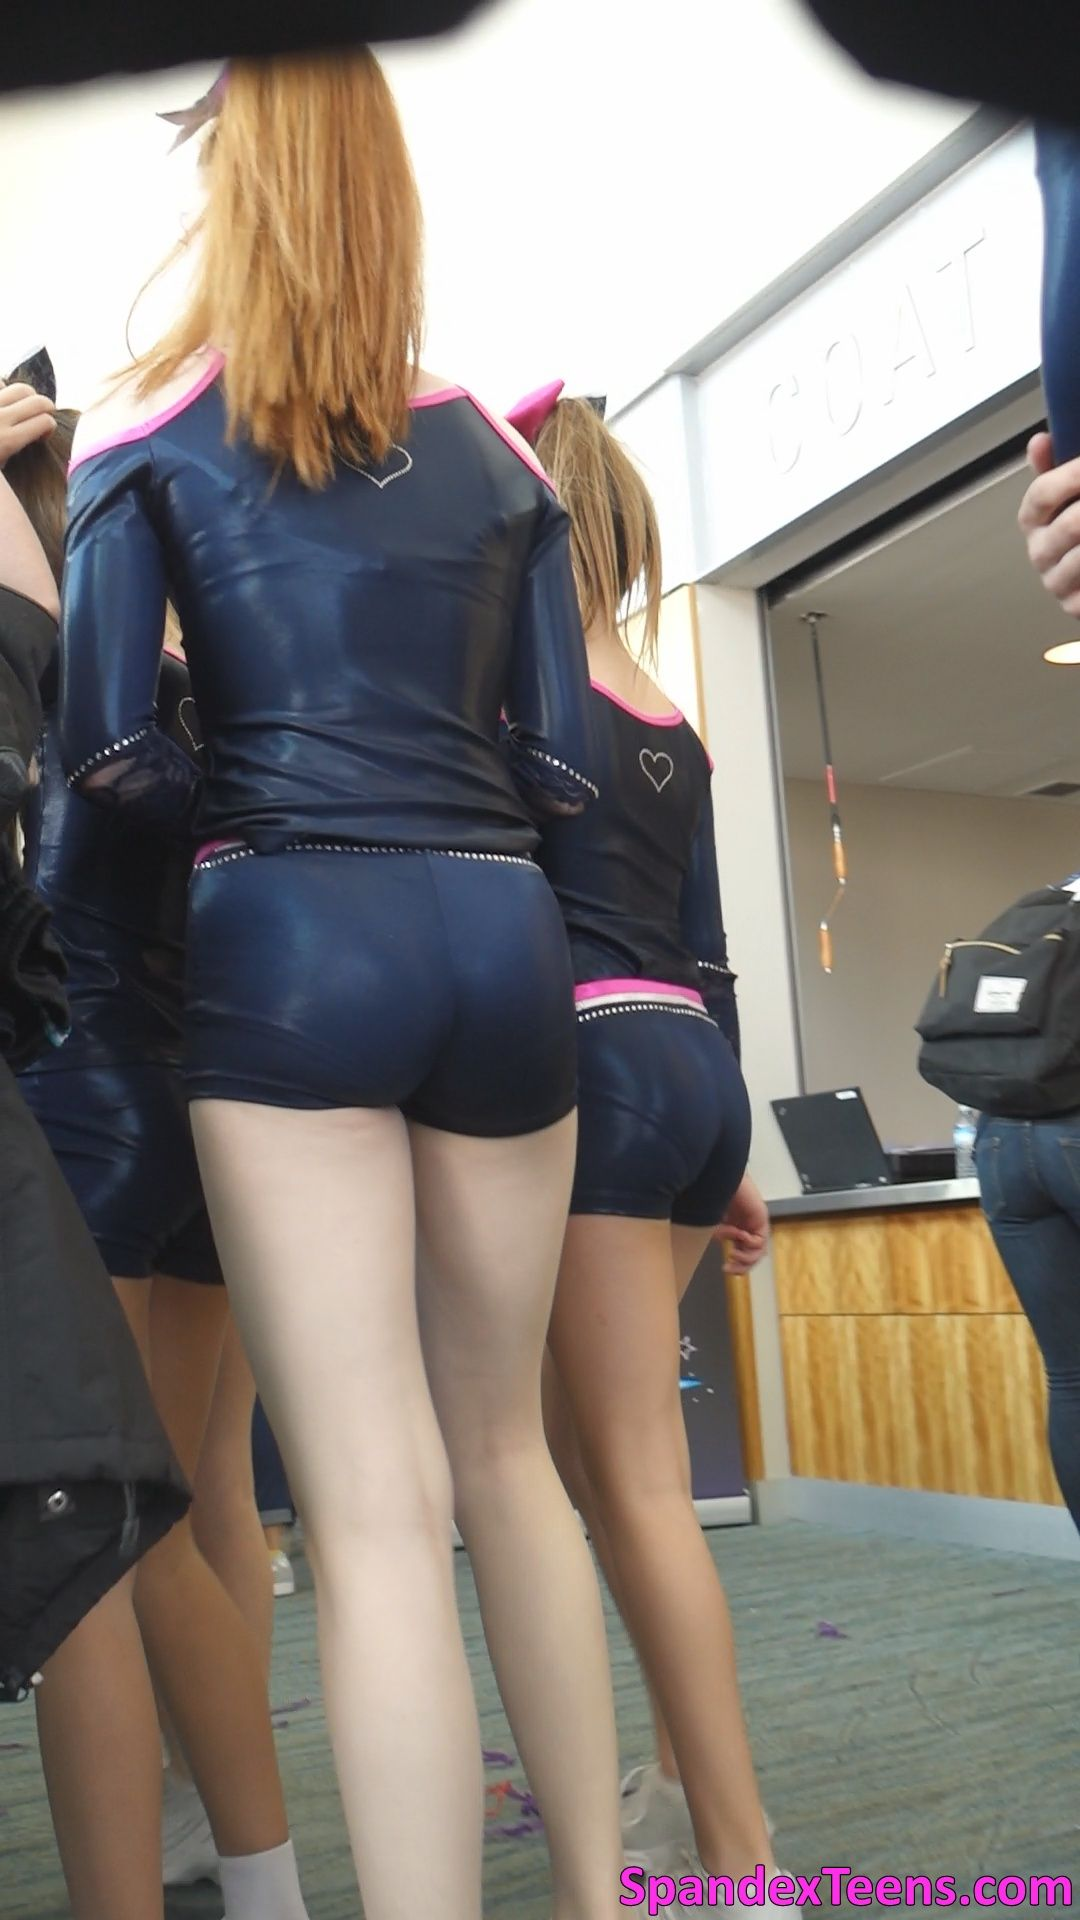 Teen In Spandex Shorts 90